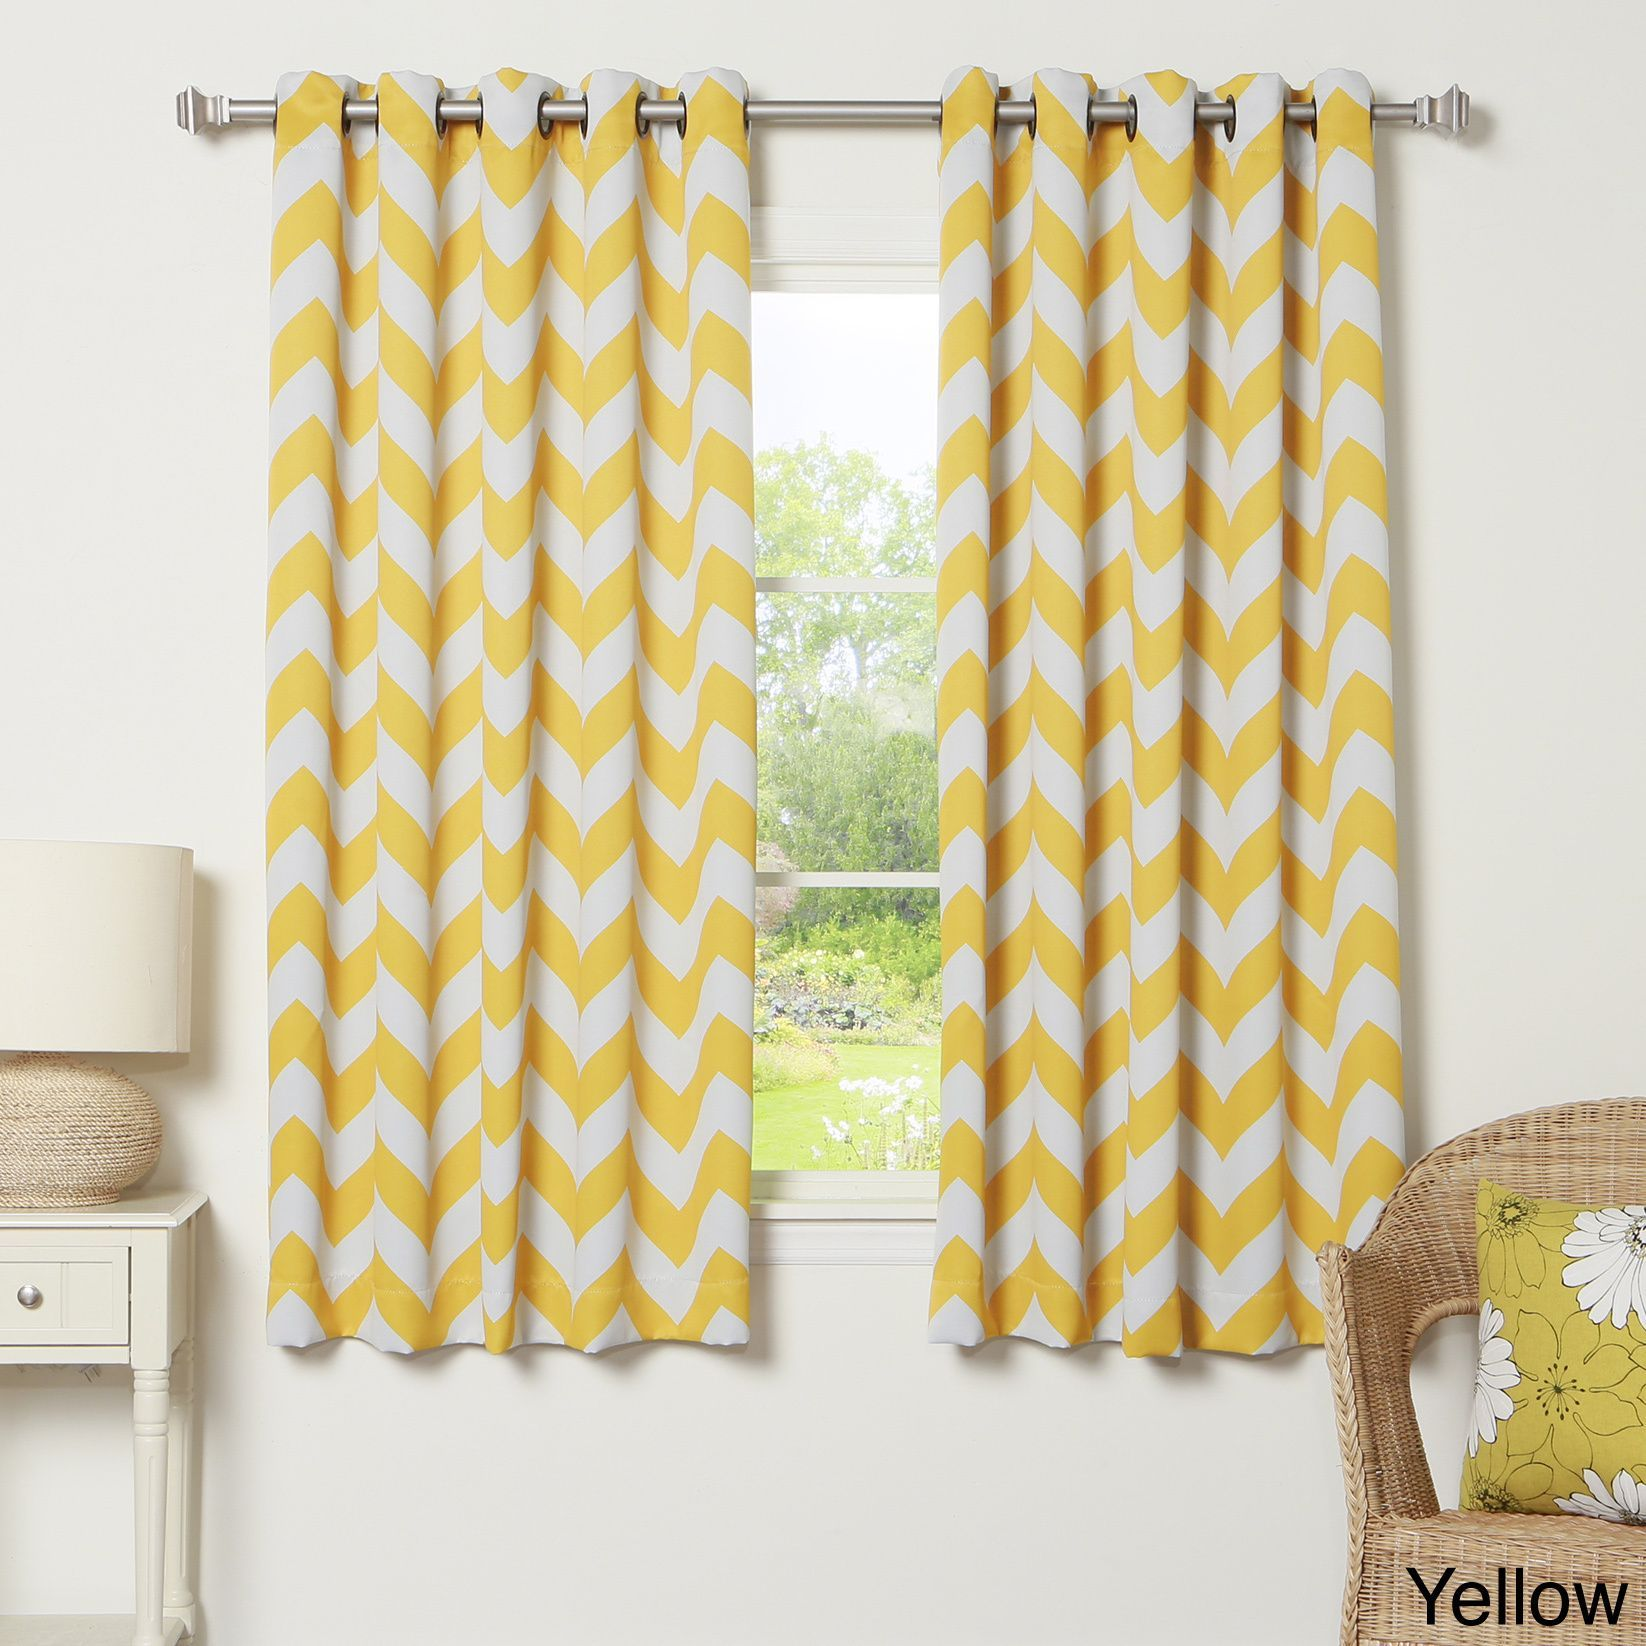 Window top decor  contemporary chevron patterns are a simple and modern addition to